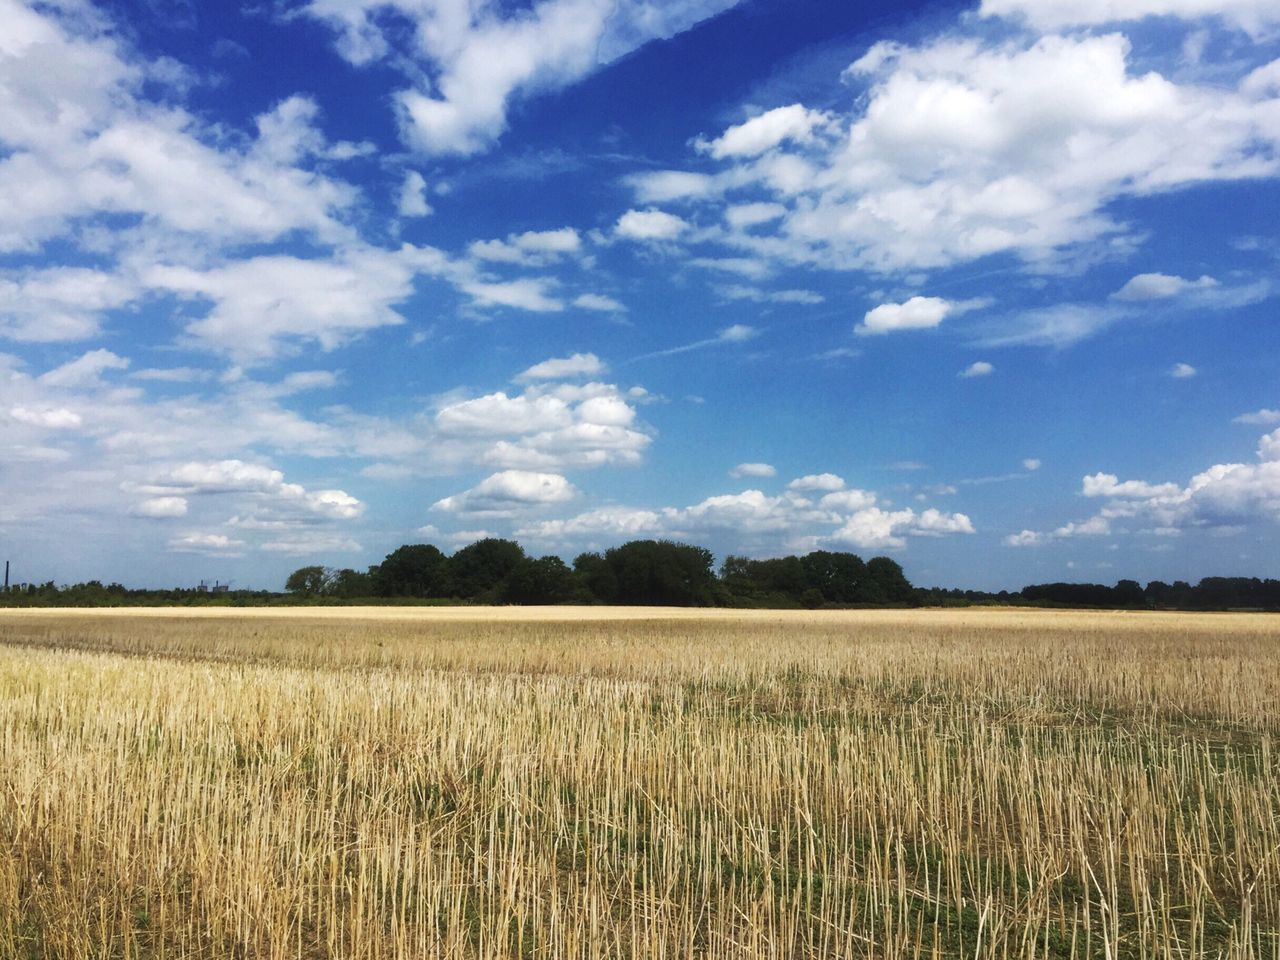 Field Sky Landscape Agriculture Tranquility Nature Cloud - Sky Day Growth Beauty In Nature Outdoors No People Tranquil Scene Scenics Rural Scene Cereal Plant Tree